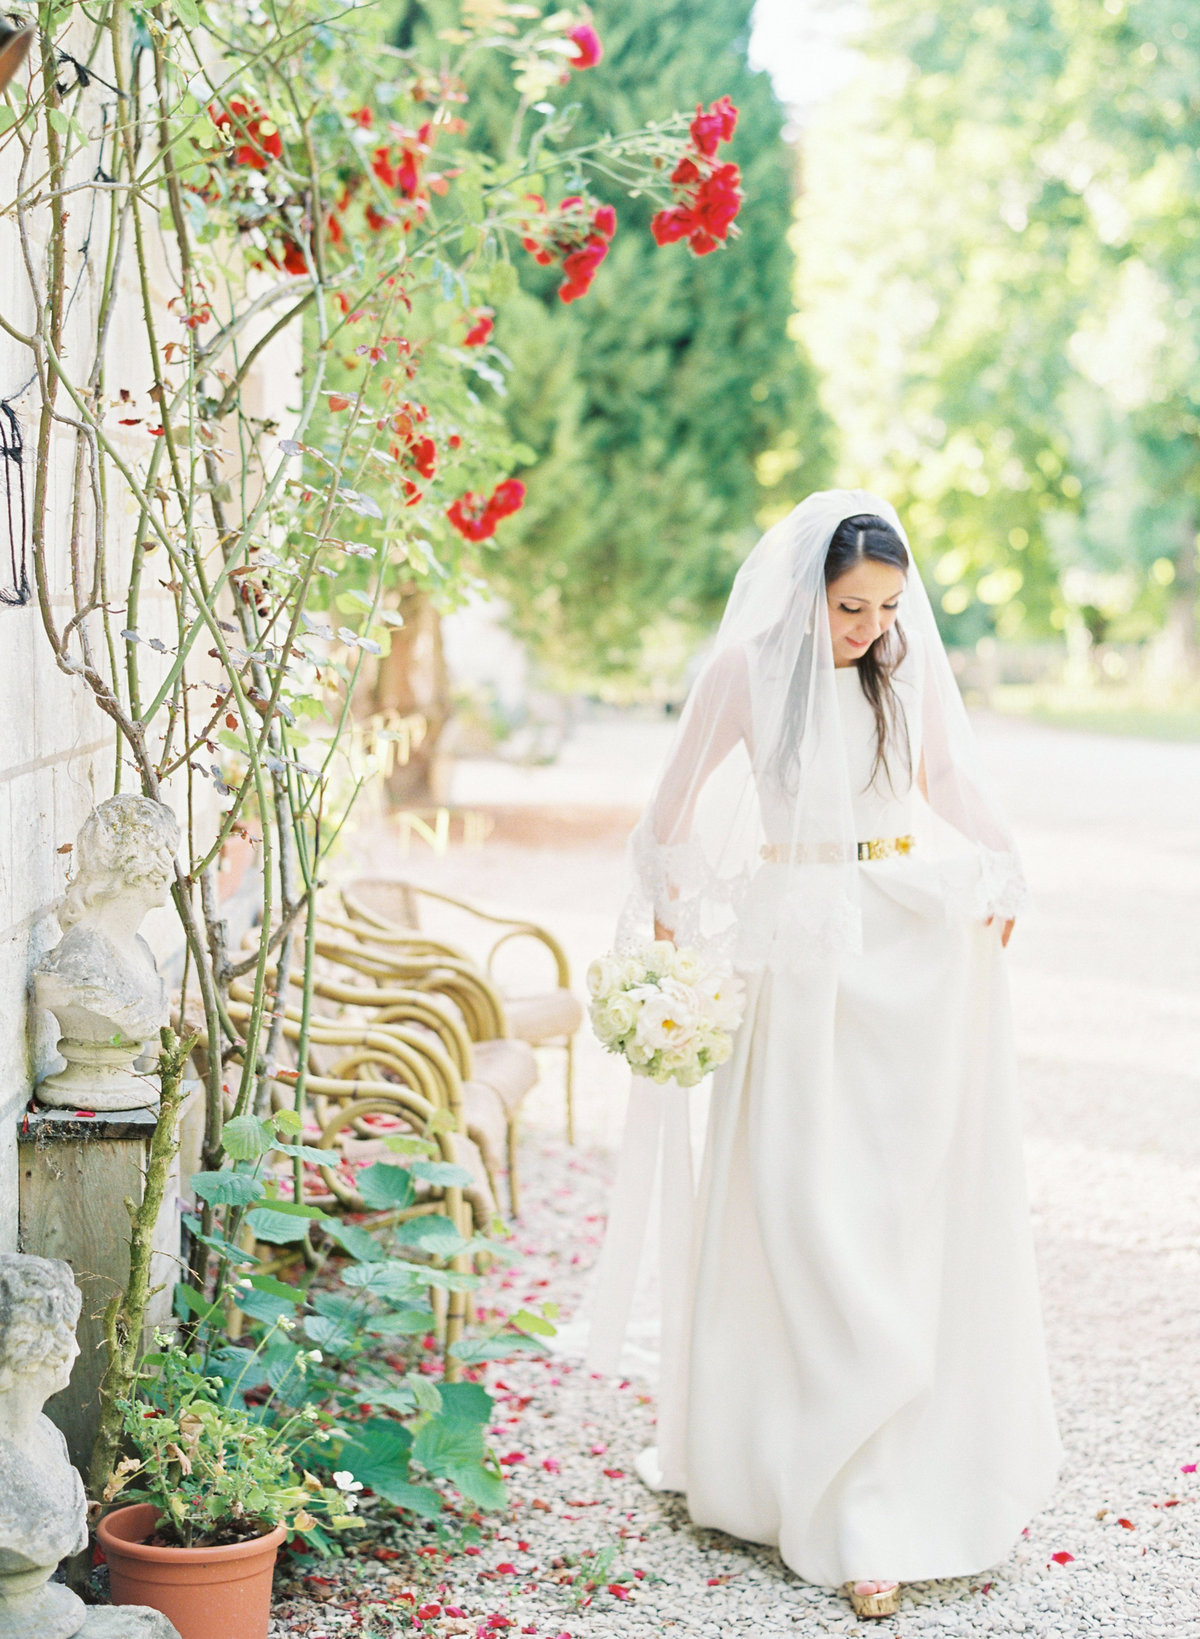 Intimate french champagne chateau wedding amelia soegijono0055